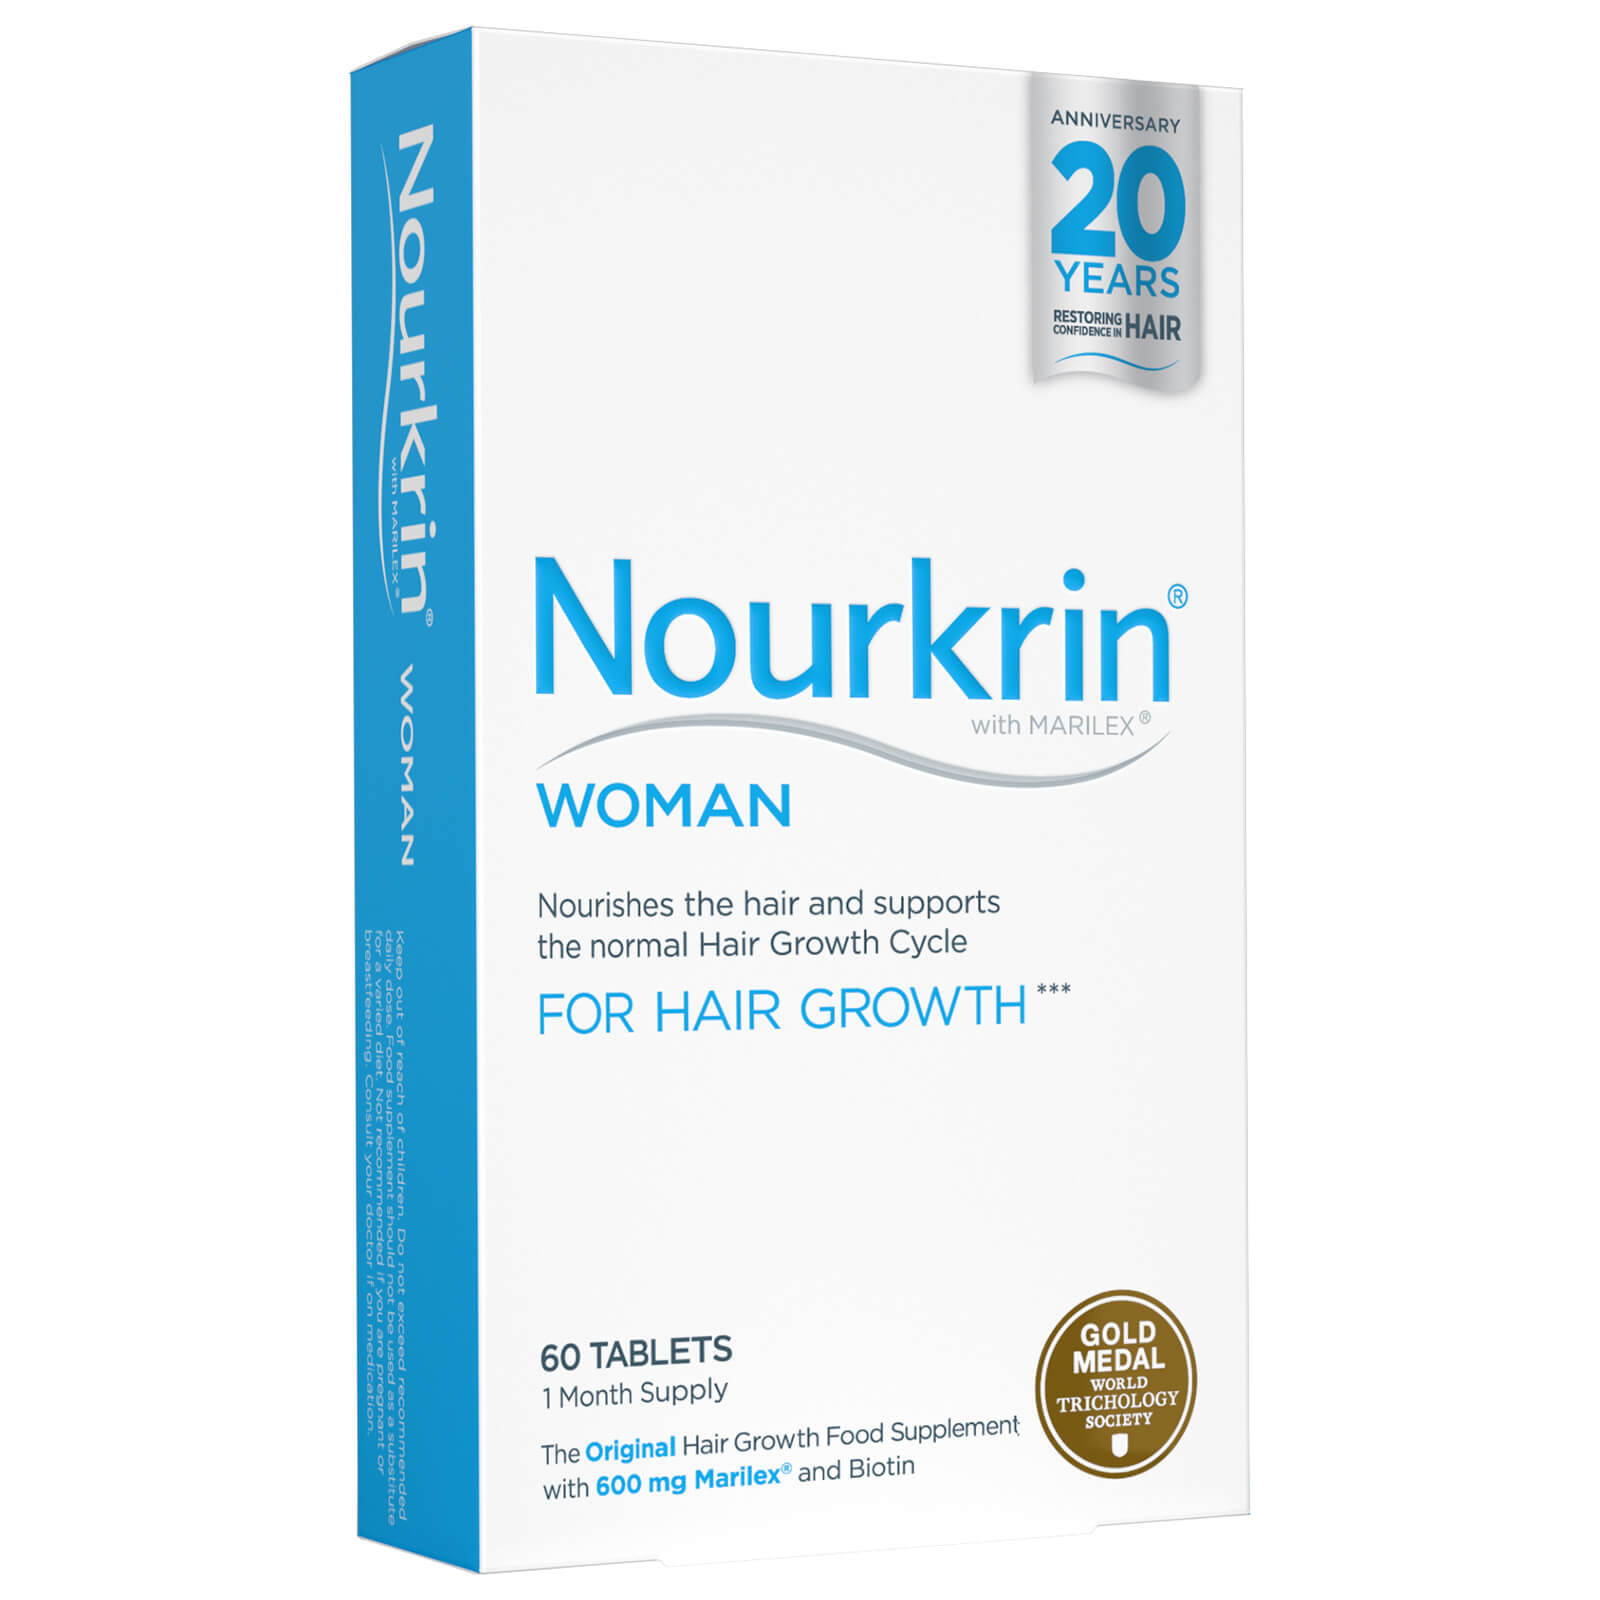 Nourkrin Woman (60 Tablets)